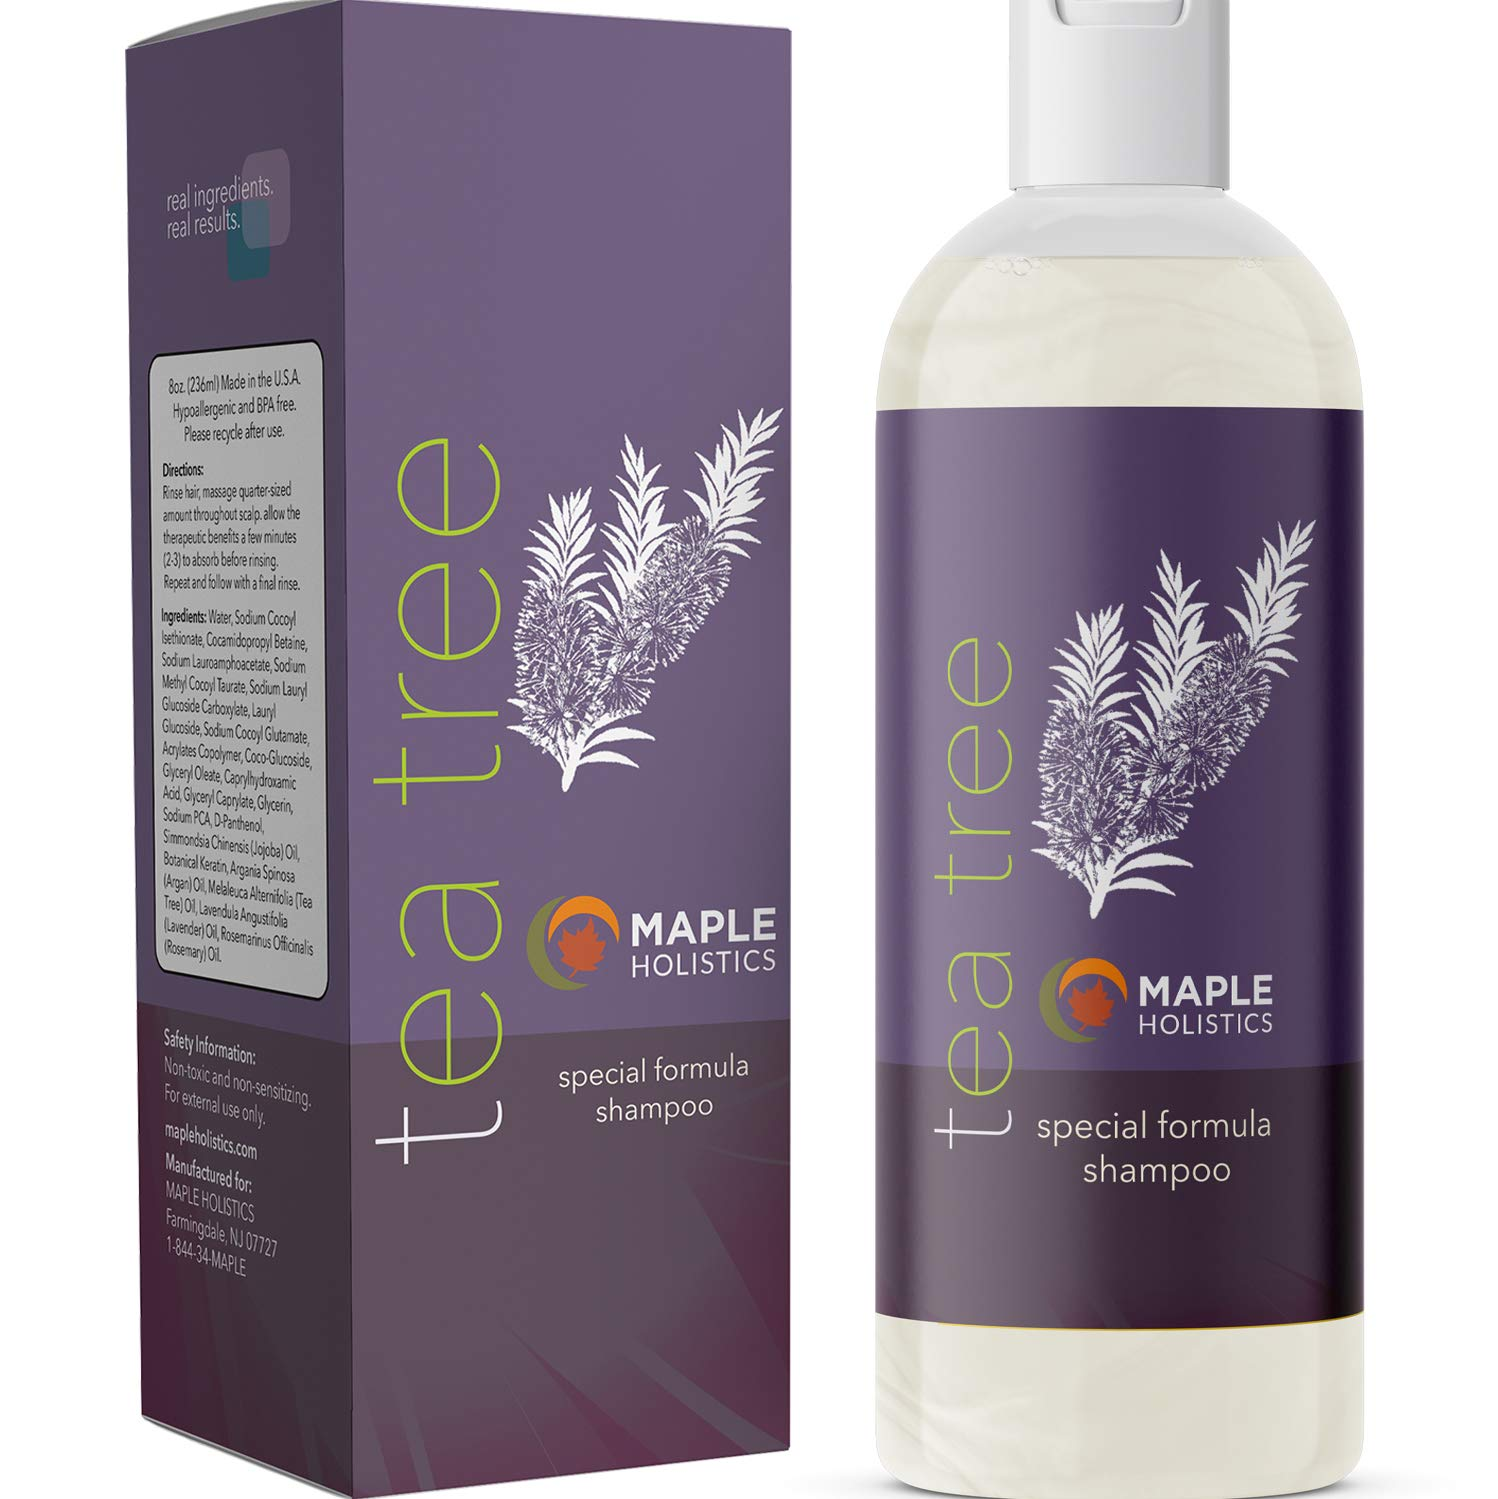 Maple Holistics Pure Tea Tree Oil Shampoo